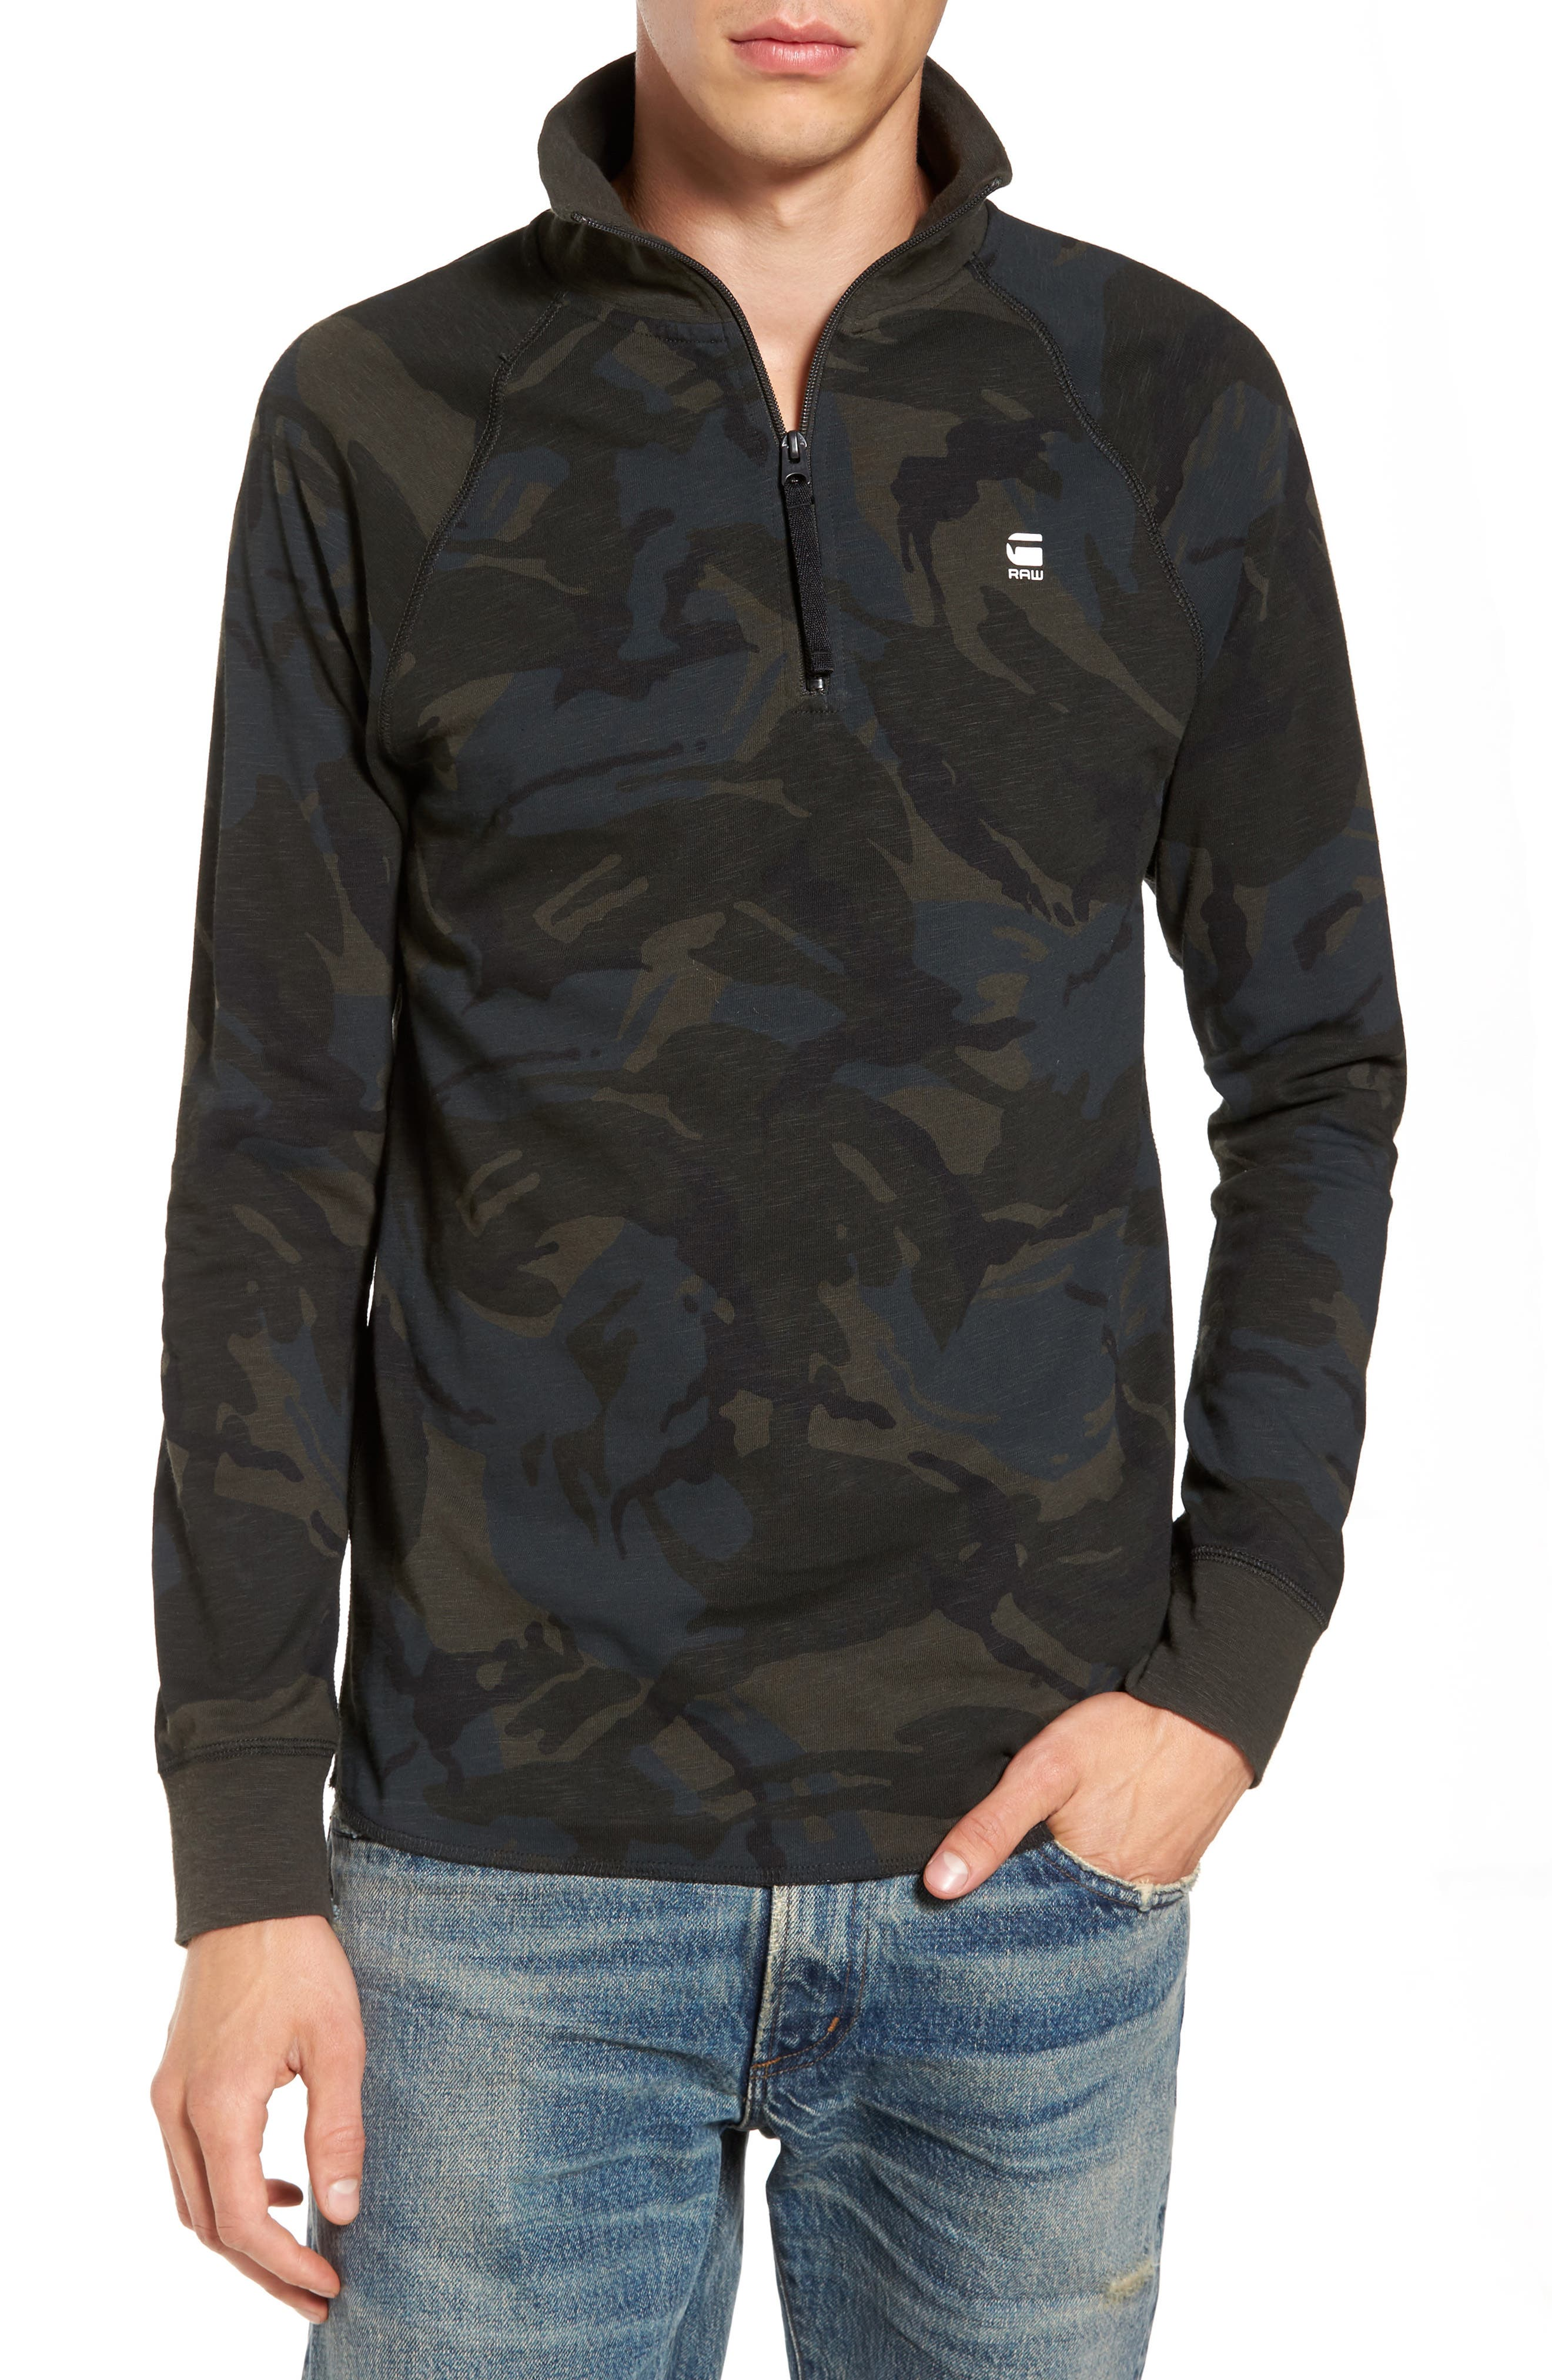 G-Star Raw Jirgi Quarter Zip Jacket